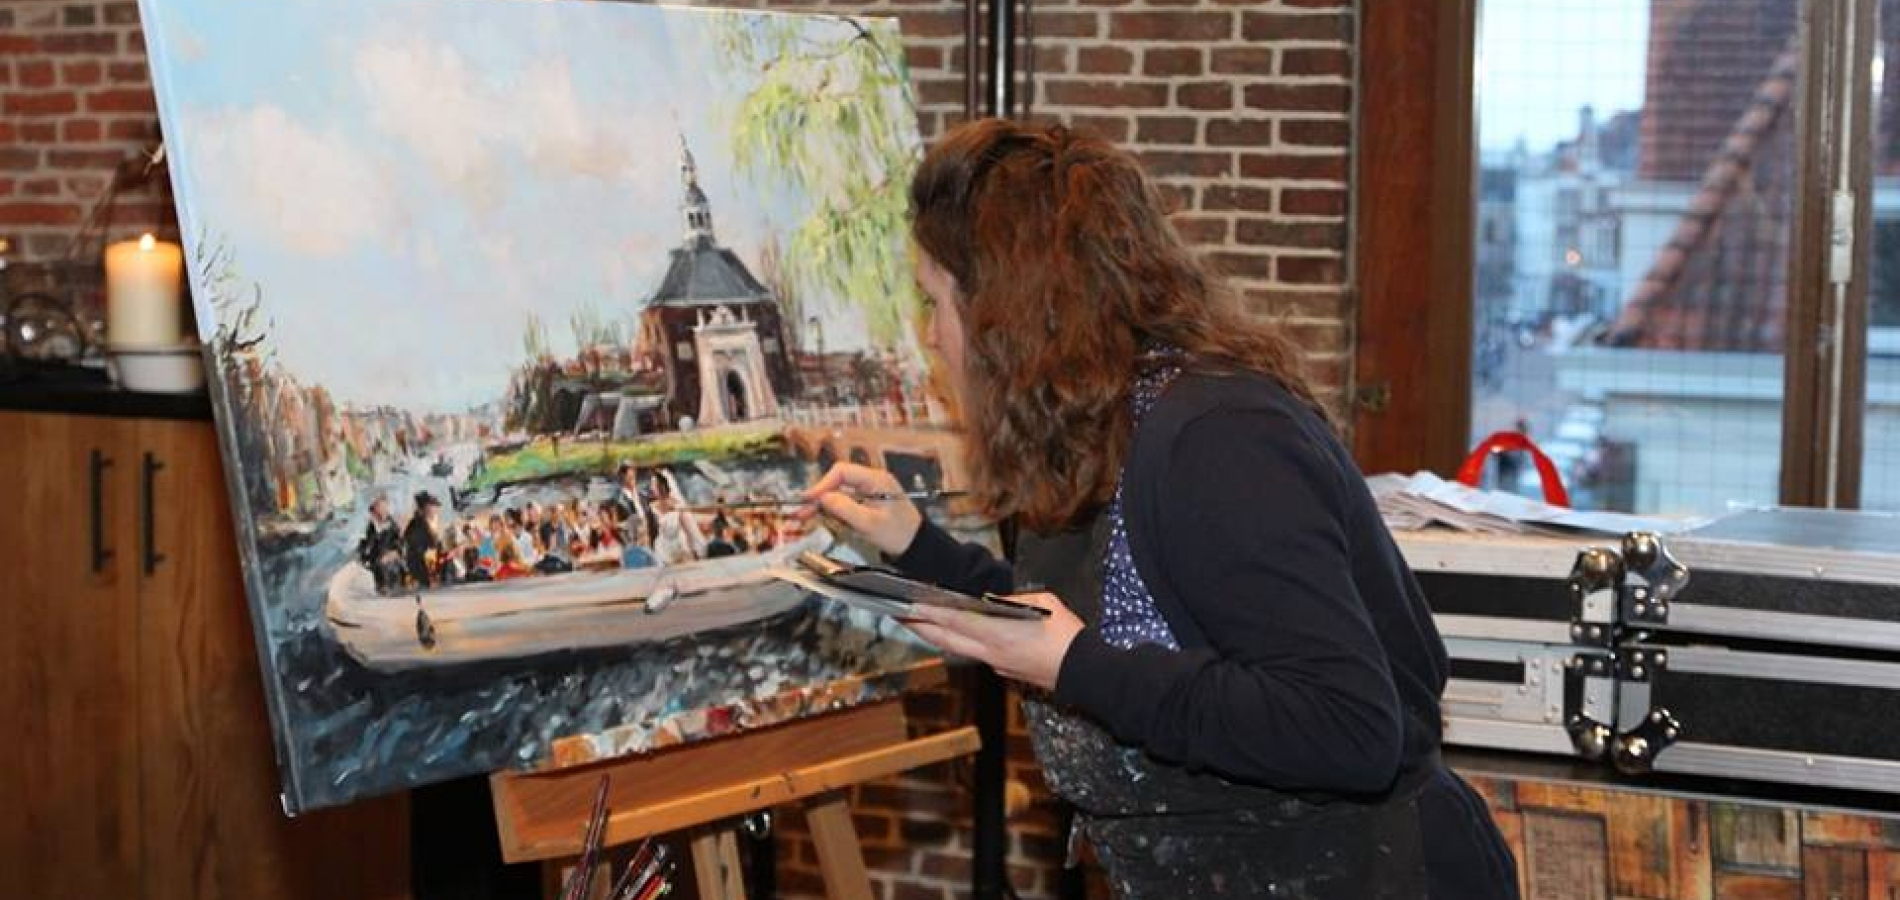 Live_Paint_Dorien_5_april_Leiden_werk